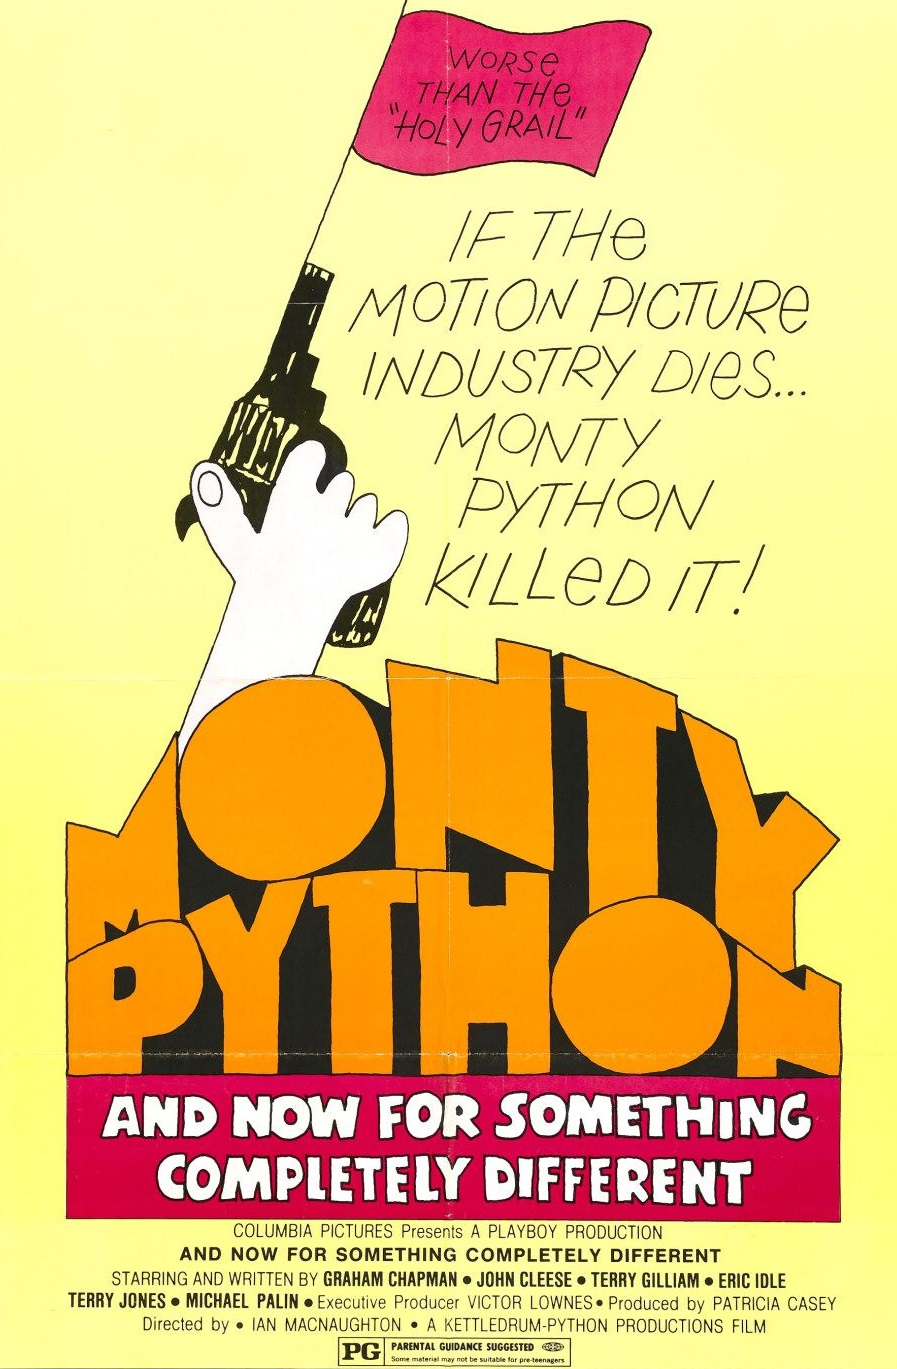 And Now for Something Completely Different was the first feature film from Monty Python. It was comprised of filmed versions of sketches previously performed on/written for their TV series, Monty Python's Flying Circus.